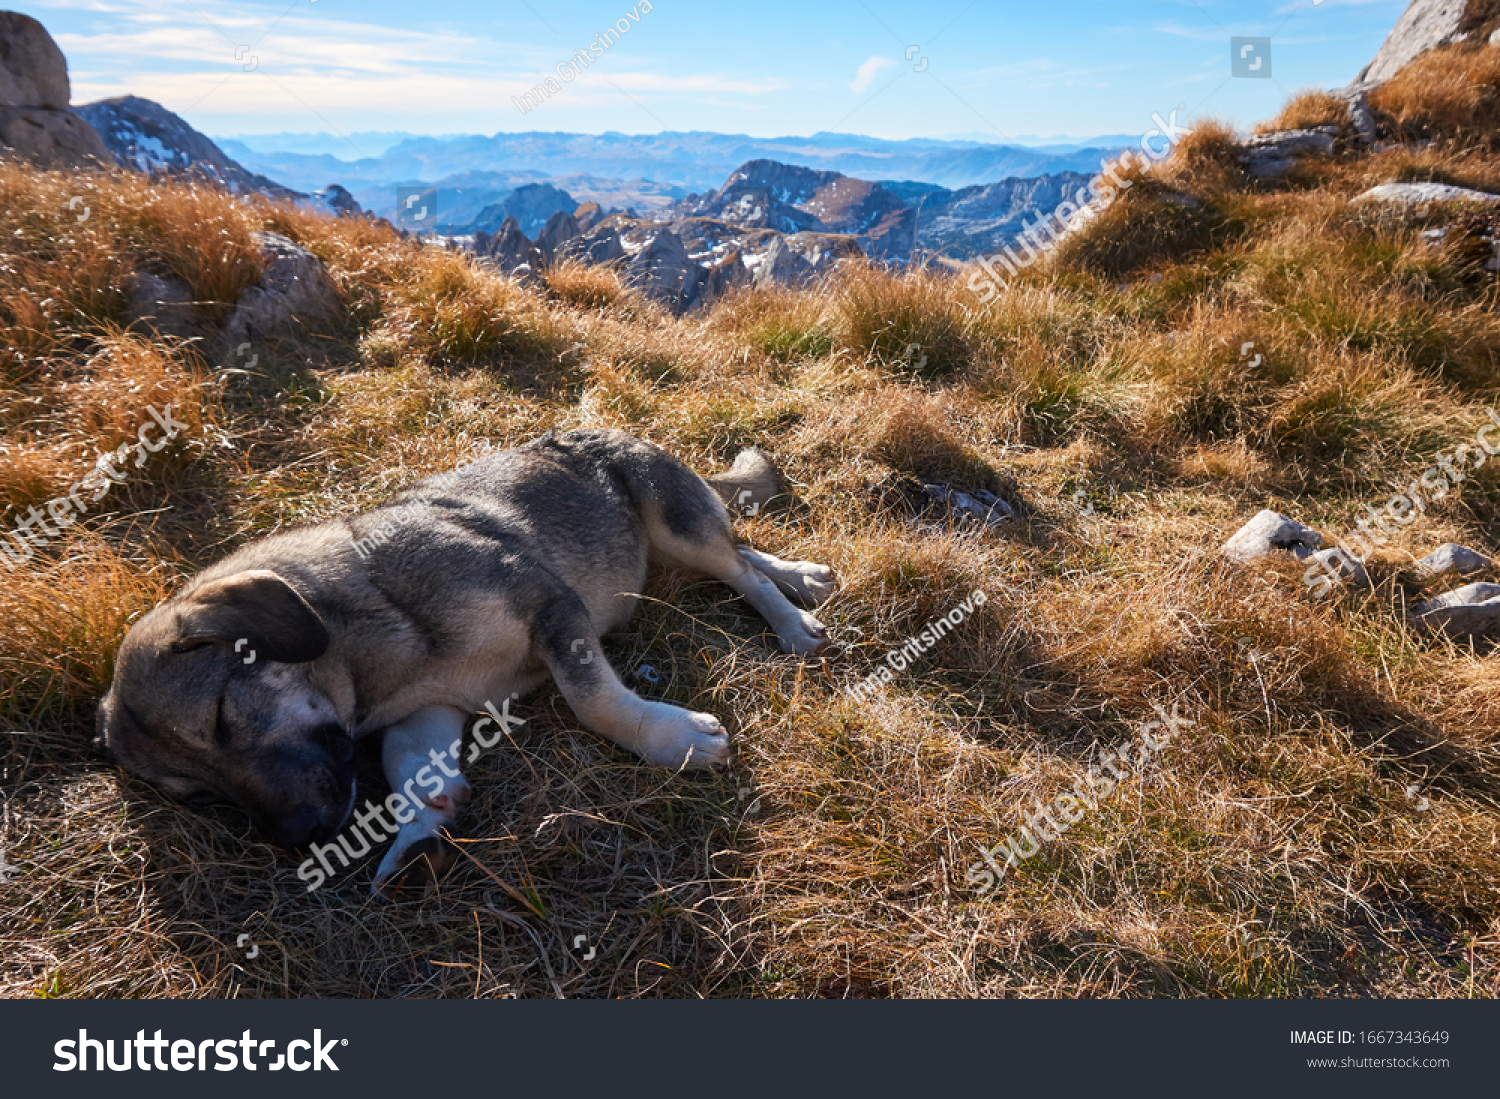 stock-photo-dog-at-nature-durmitor-lands